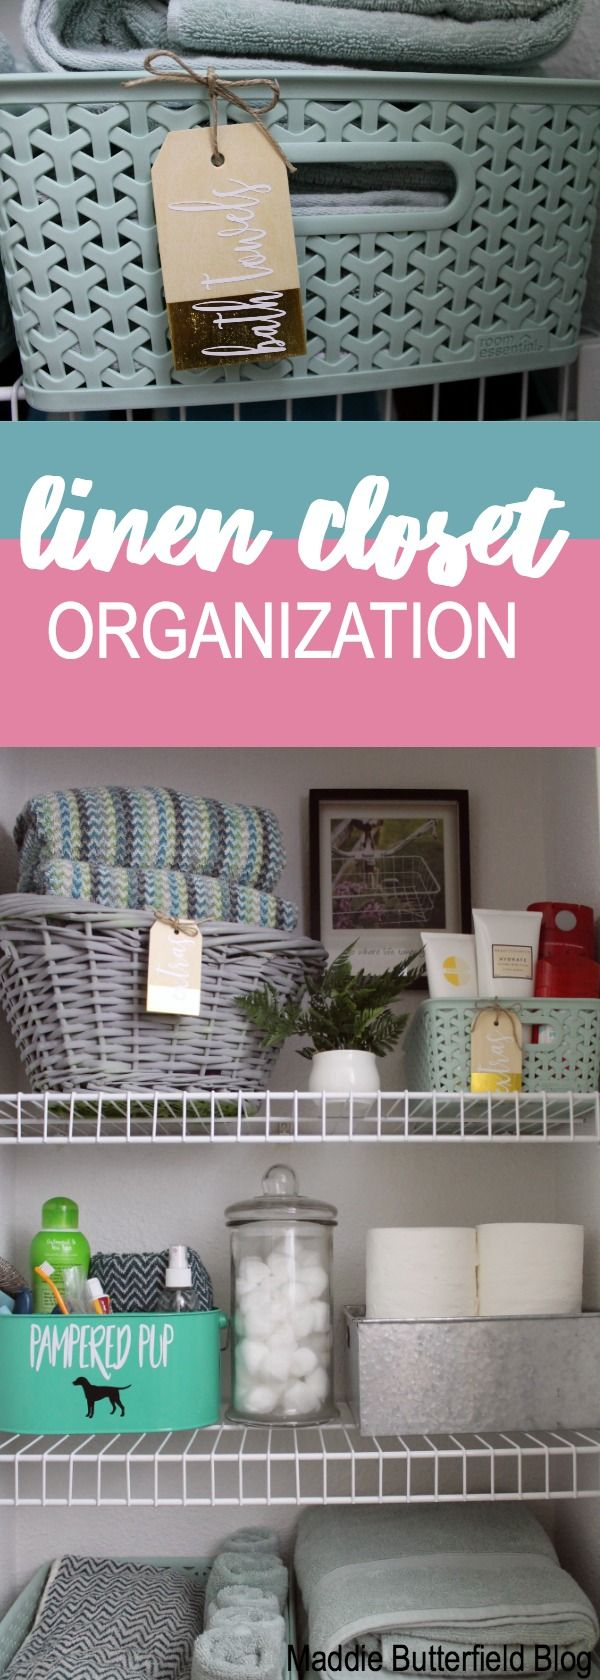 Small linen closet organization for towels, extra products, and bed sheets.